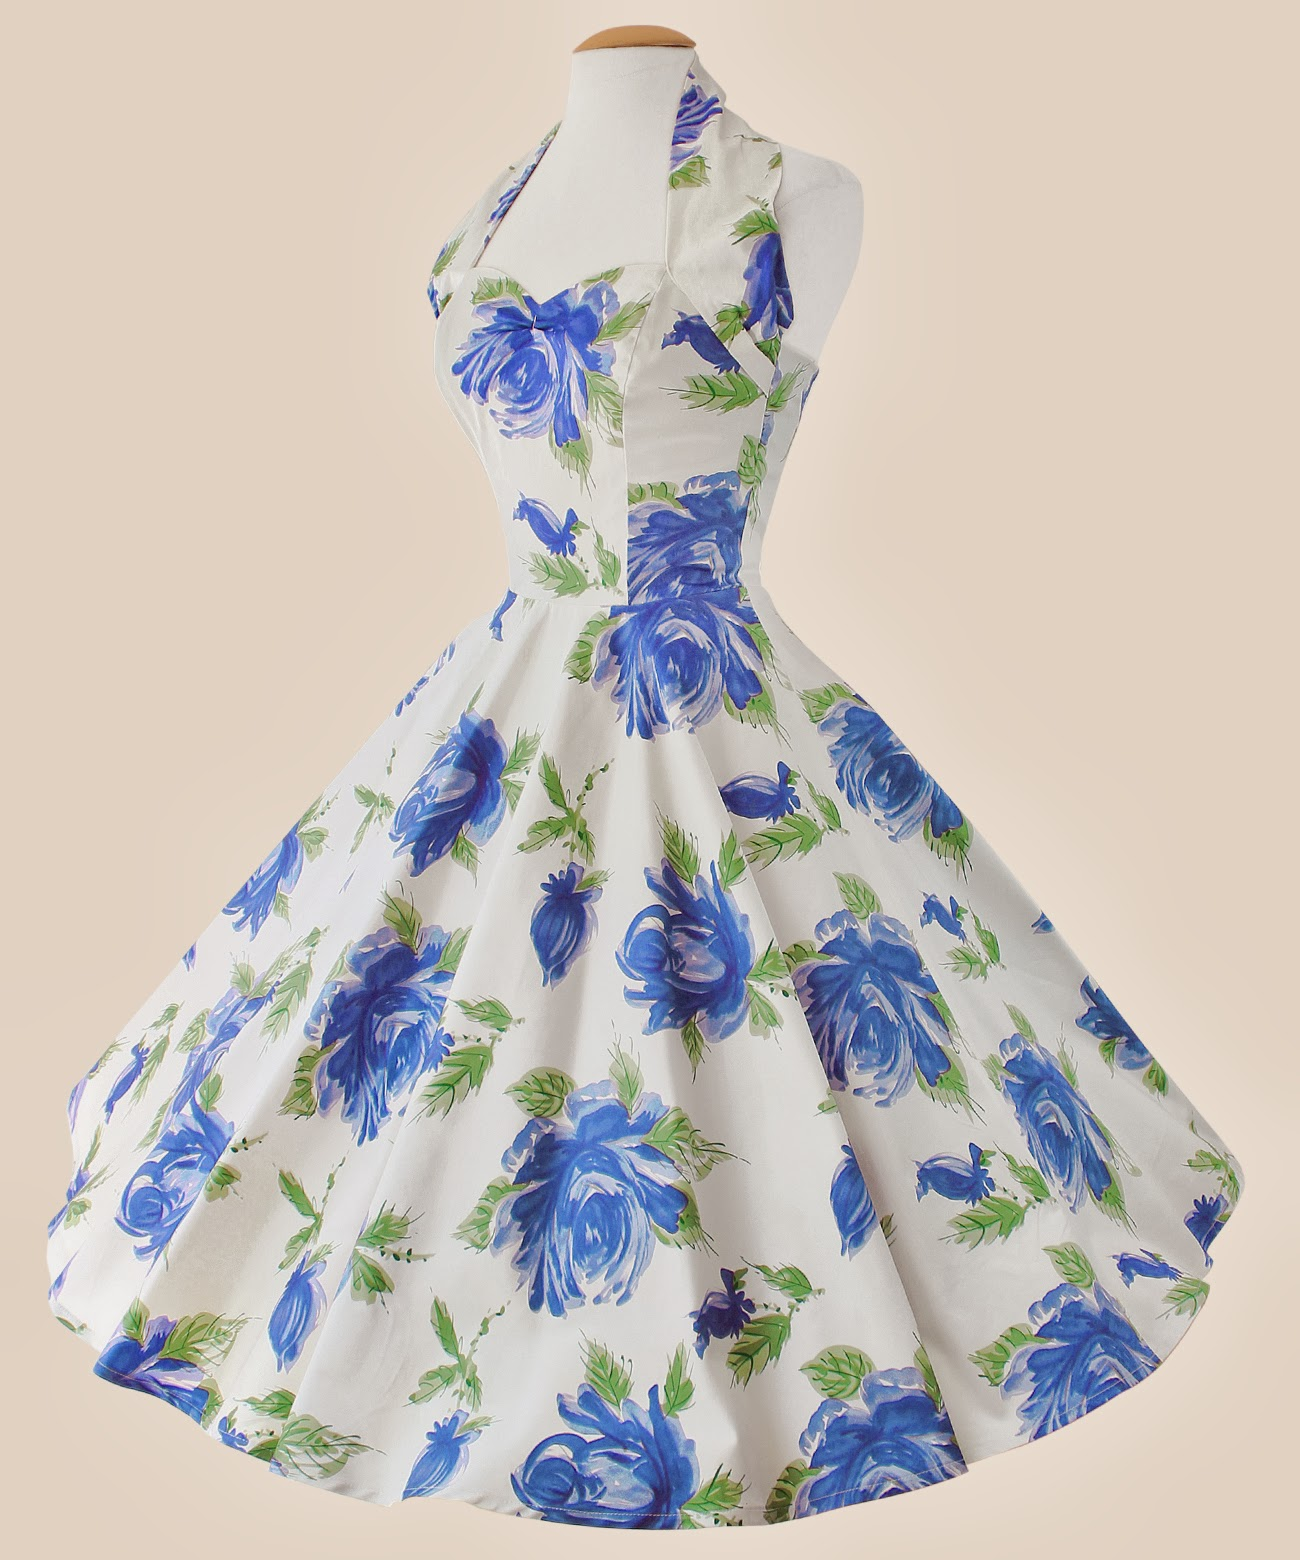 50's Halter Neck Floral Dress - £89 - Vivien of Holloway